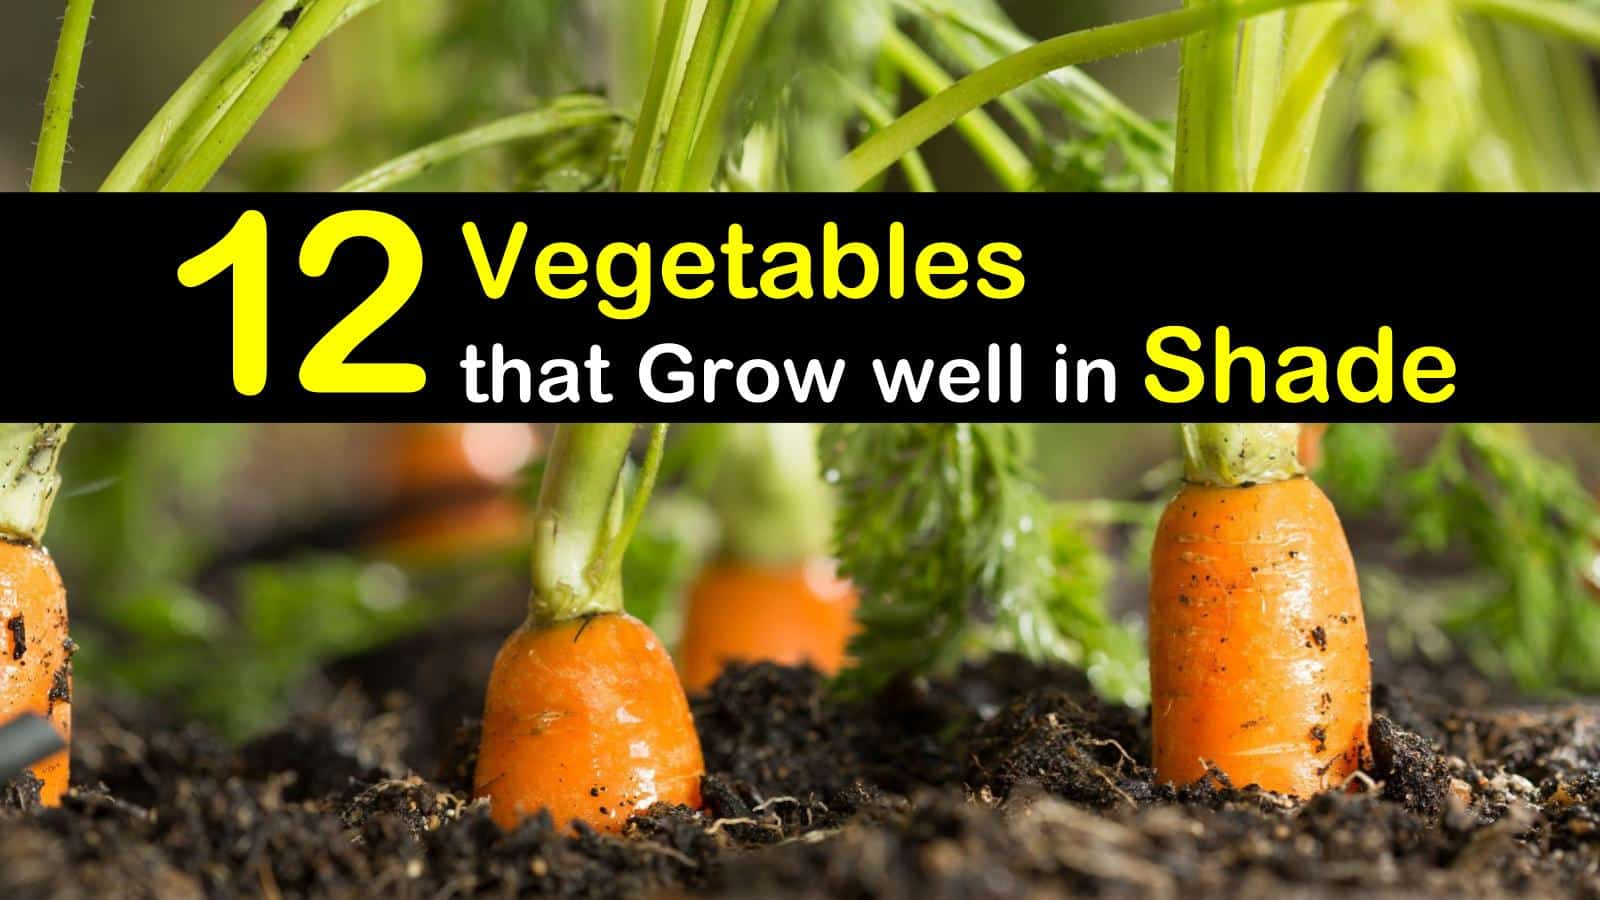 vegetables that grow well in shade titilimg